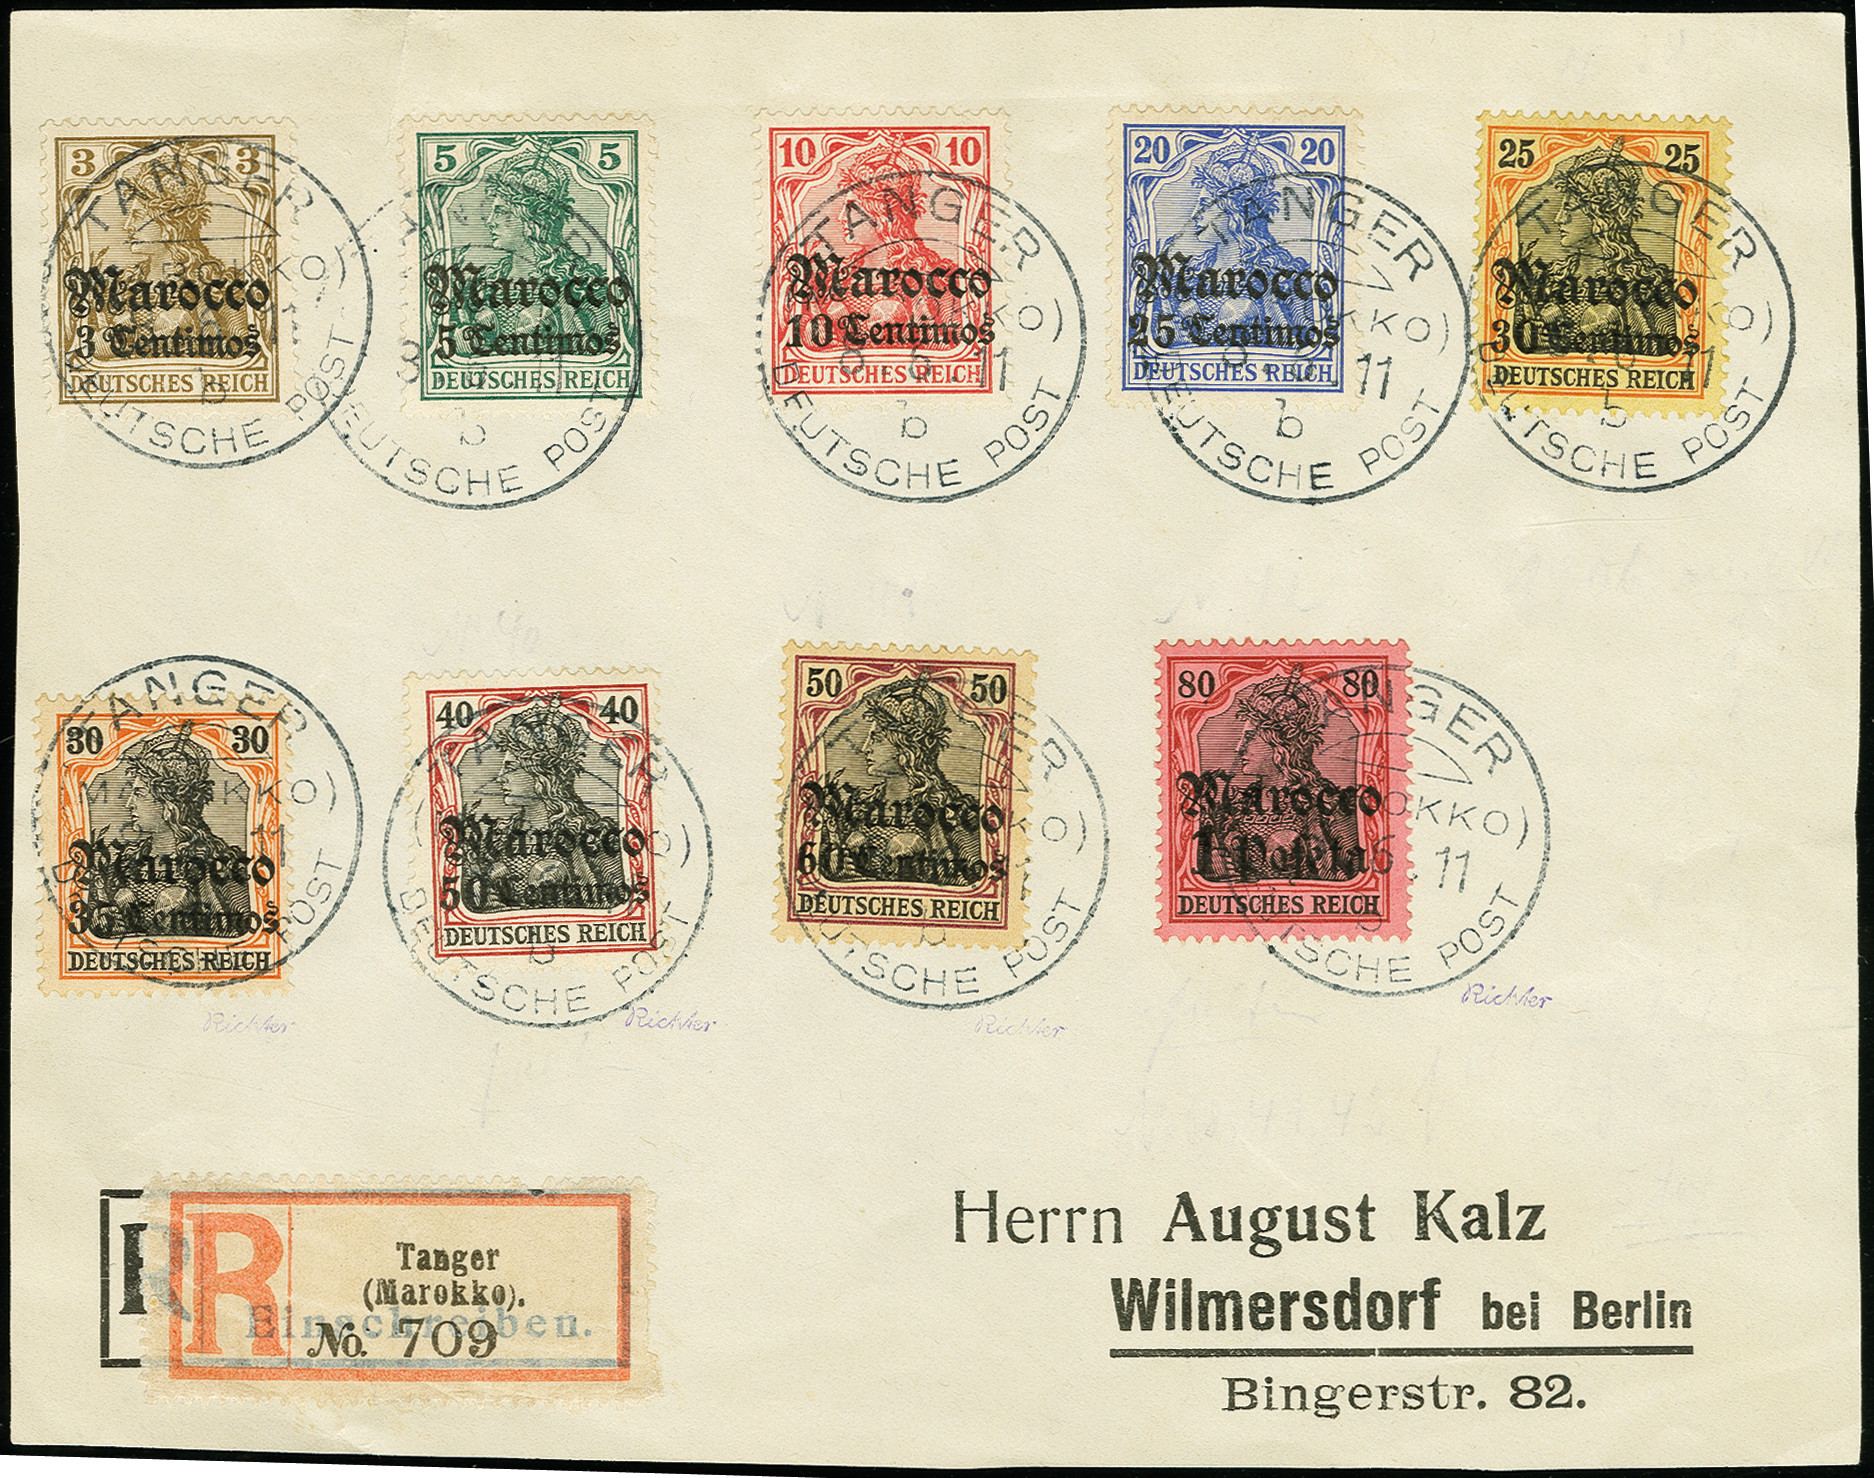 Lot 1550 - german colonies and offices abroad german post in marocco -  Heinrich Koehler Auktionen Auction #368- Day 4